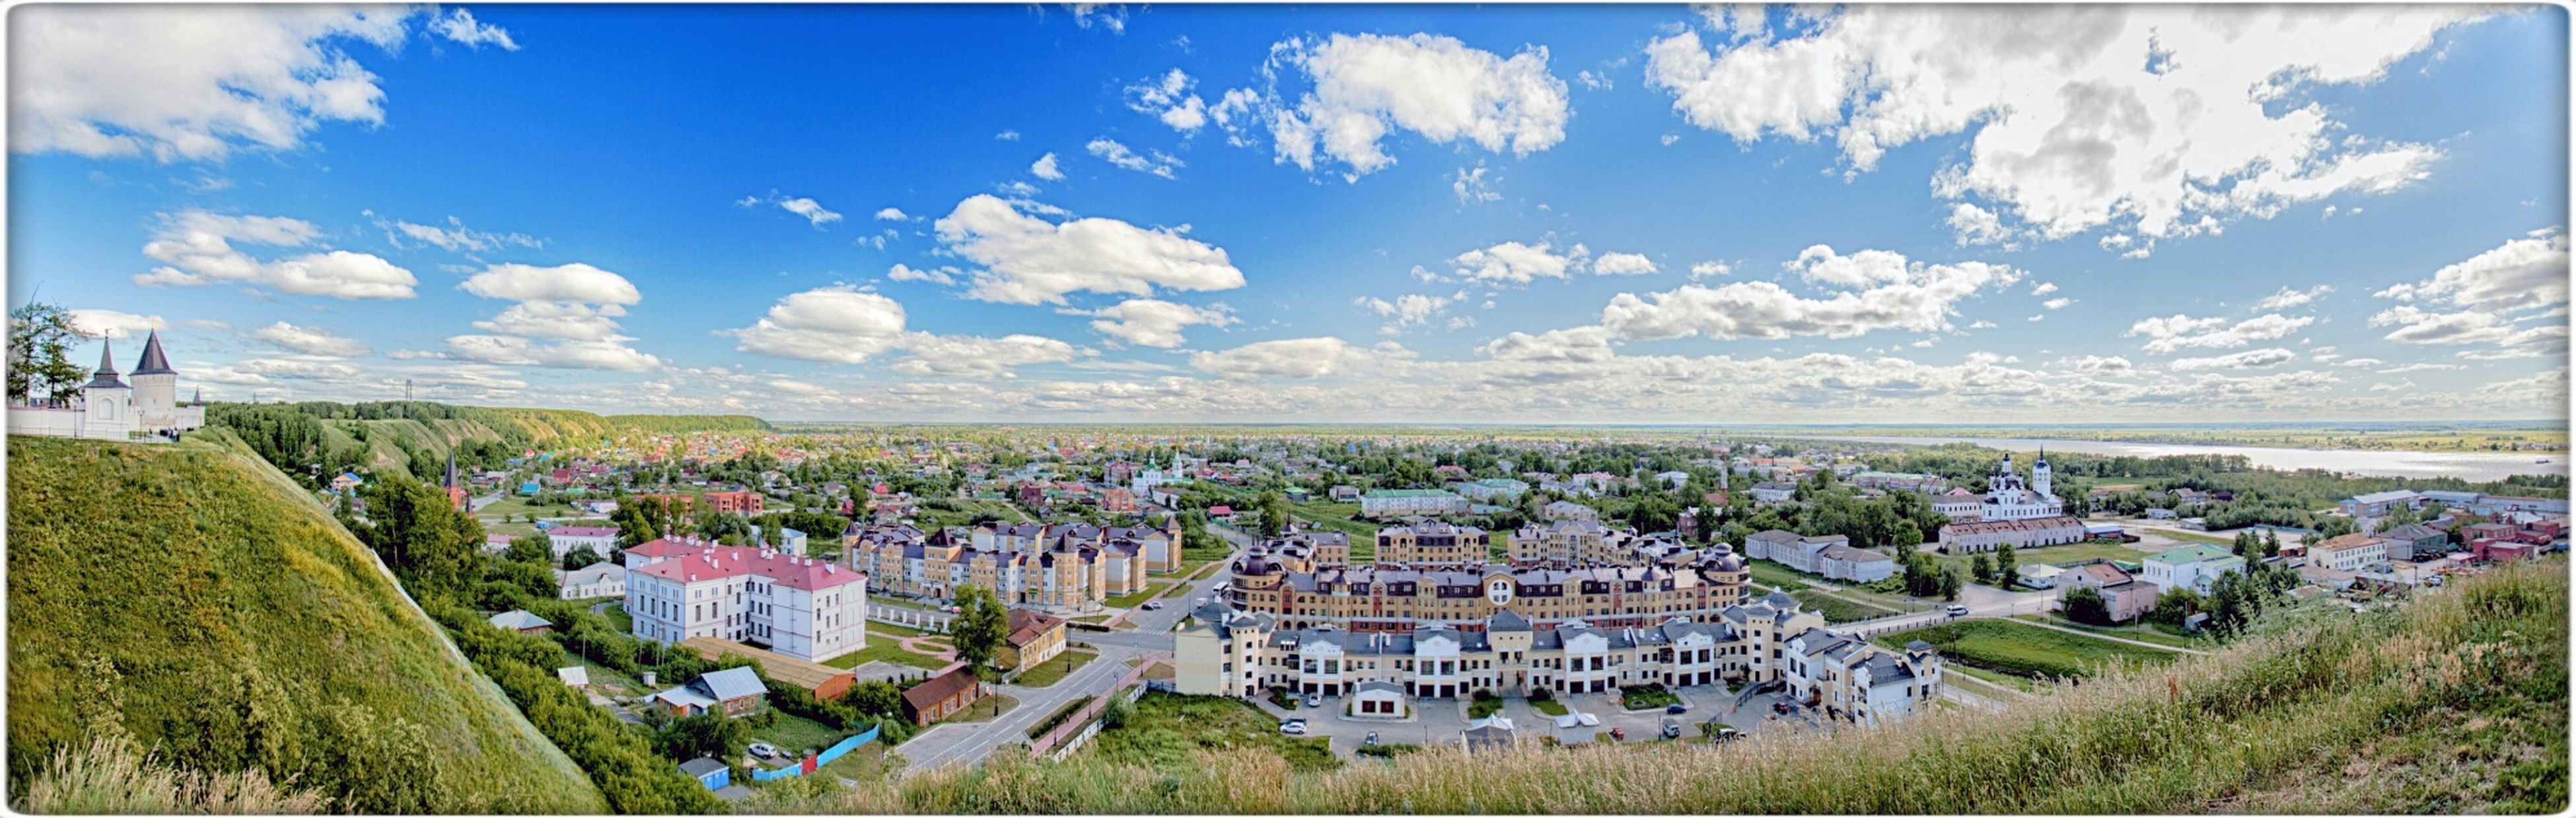 building exterior, architecture, built structure, sky, house, tree, cloud - sky, town, cloud, landscape, residential structure, panoramic, blue, city, field, residential district, high angle view, townscape, grass, village